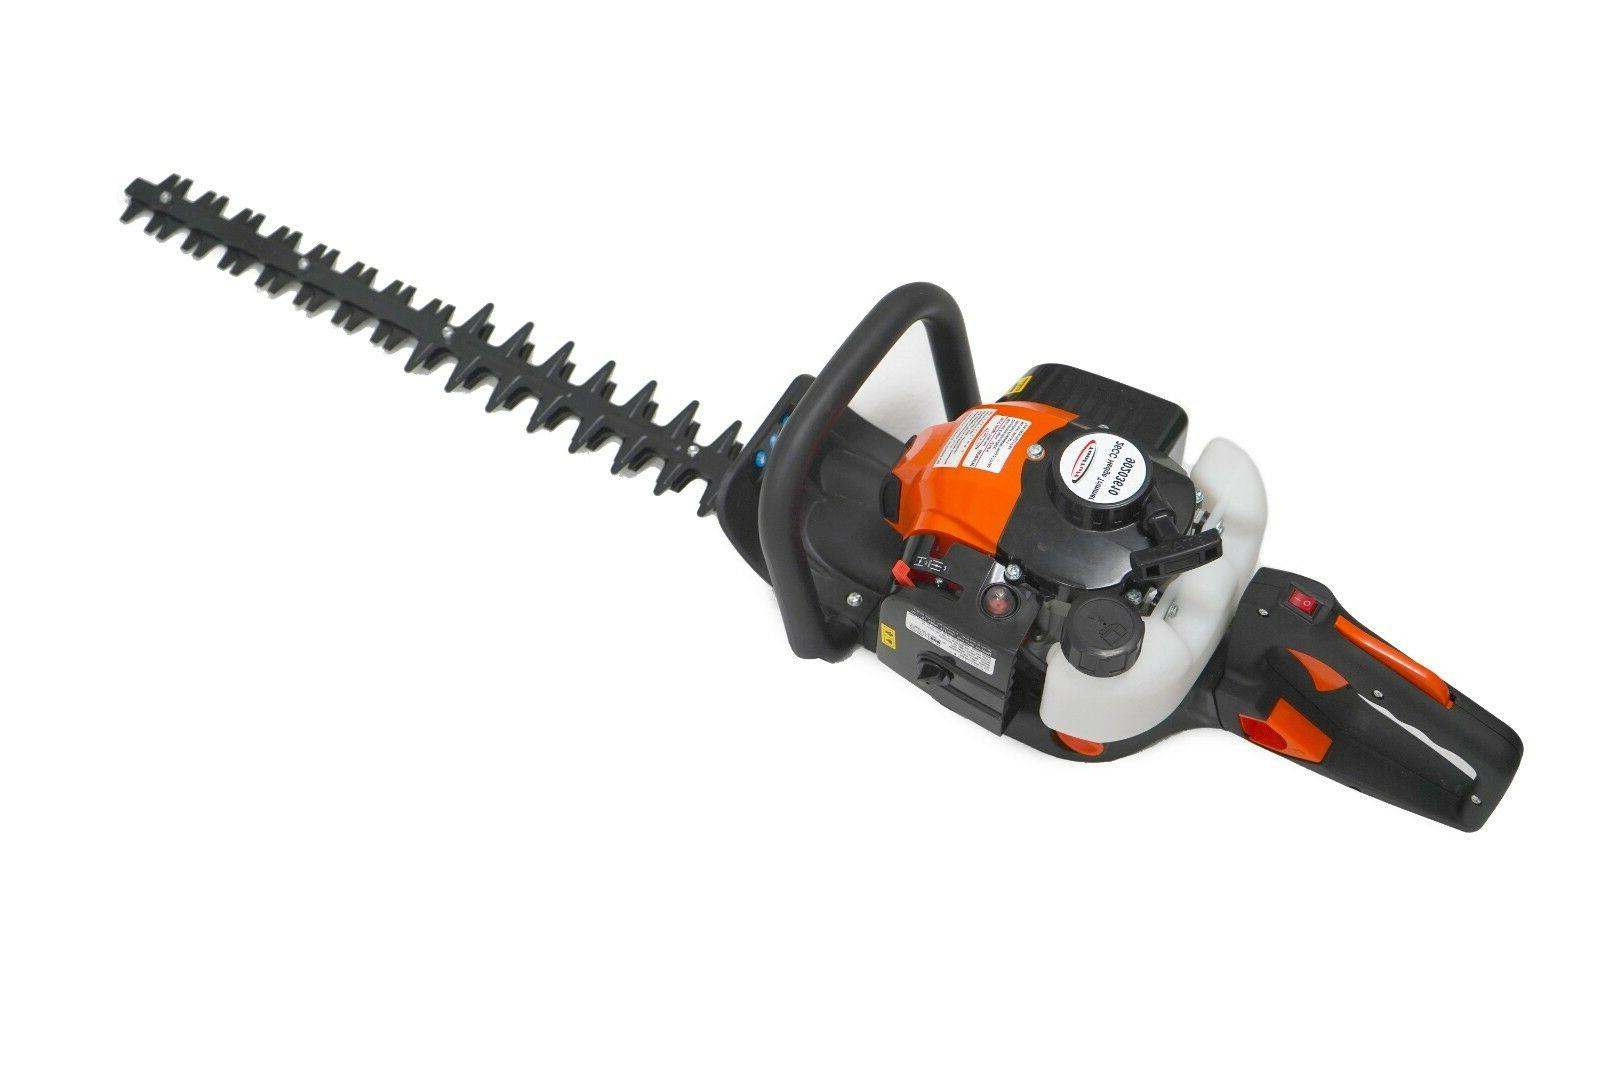 tooltuff 24 blade hedge trimmer 26cc gas